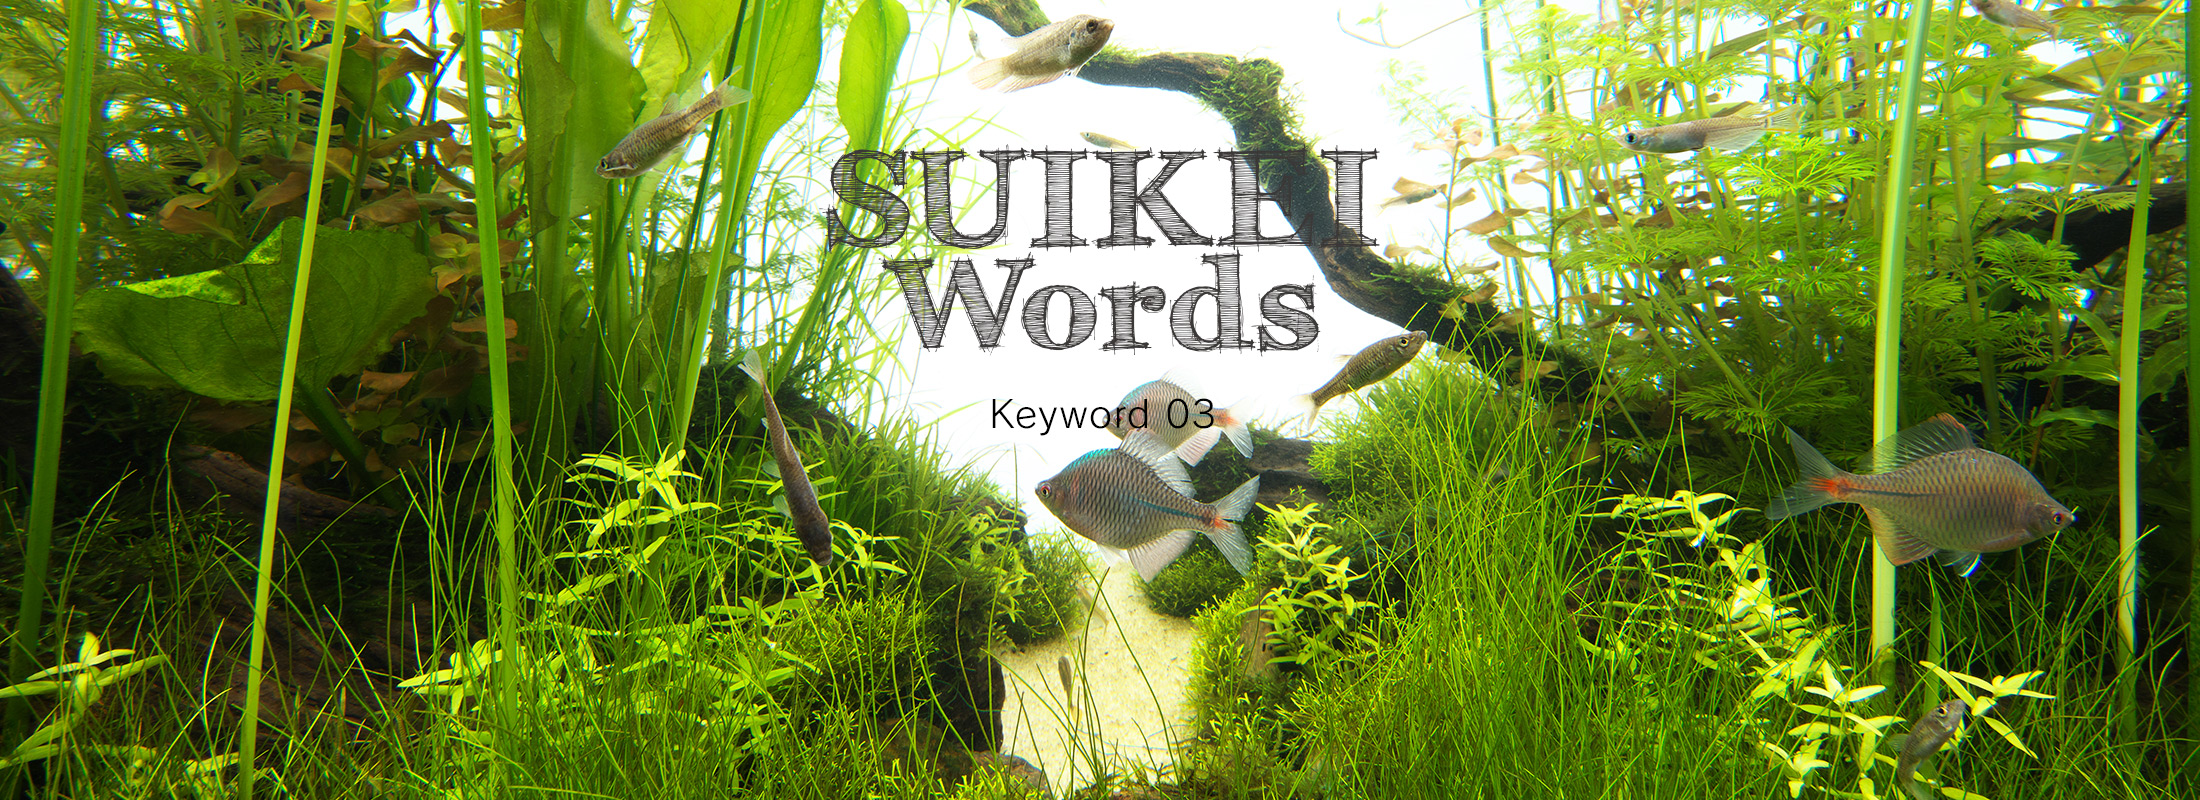 SUIKEI WORDS Keyword 03 'Lending a depth to aquascapes'